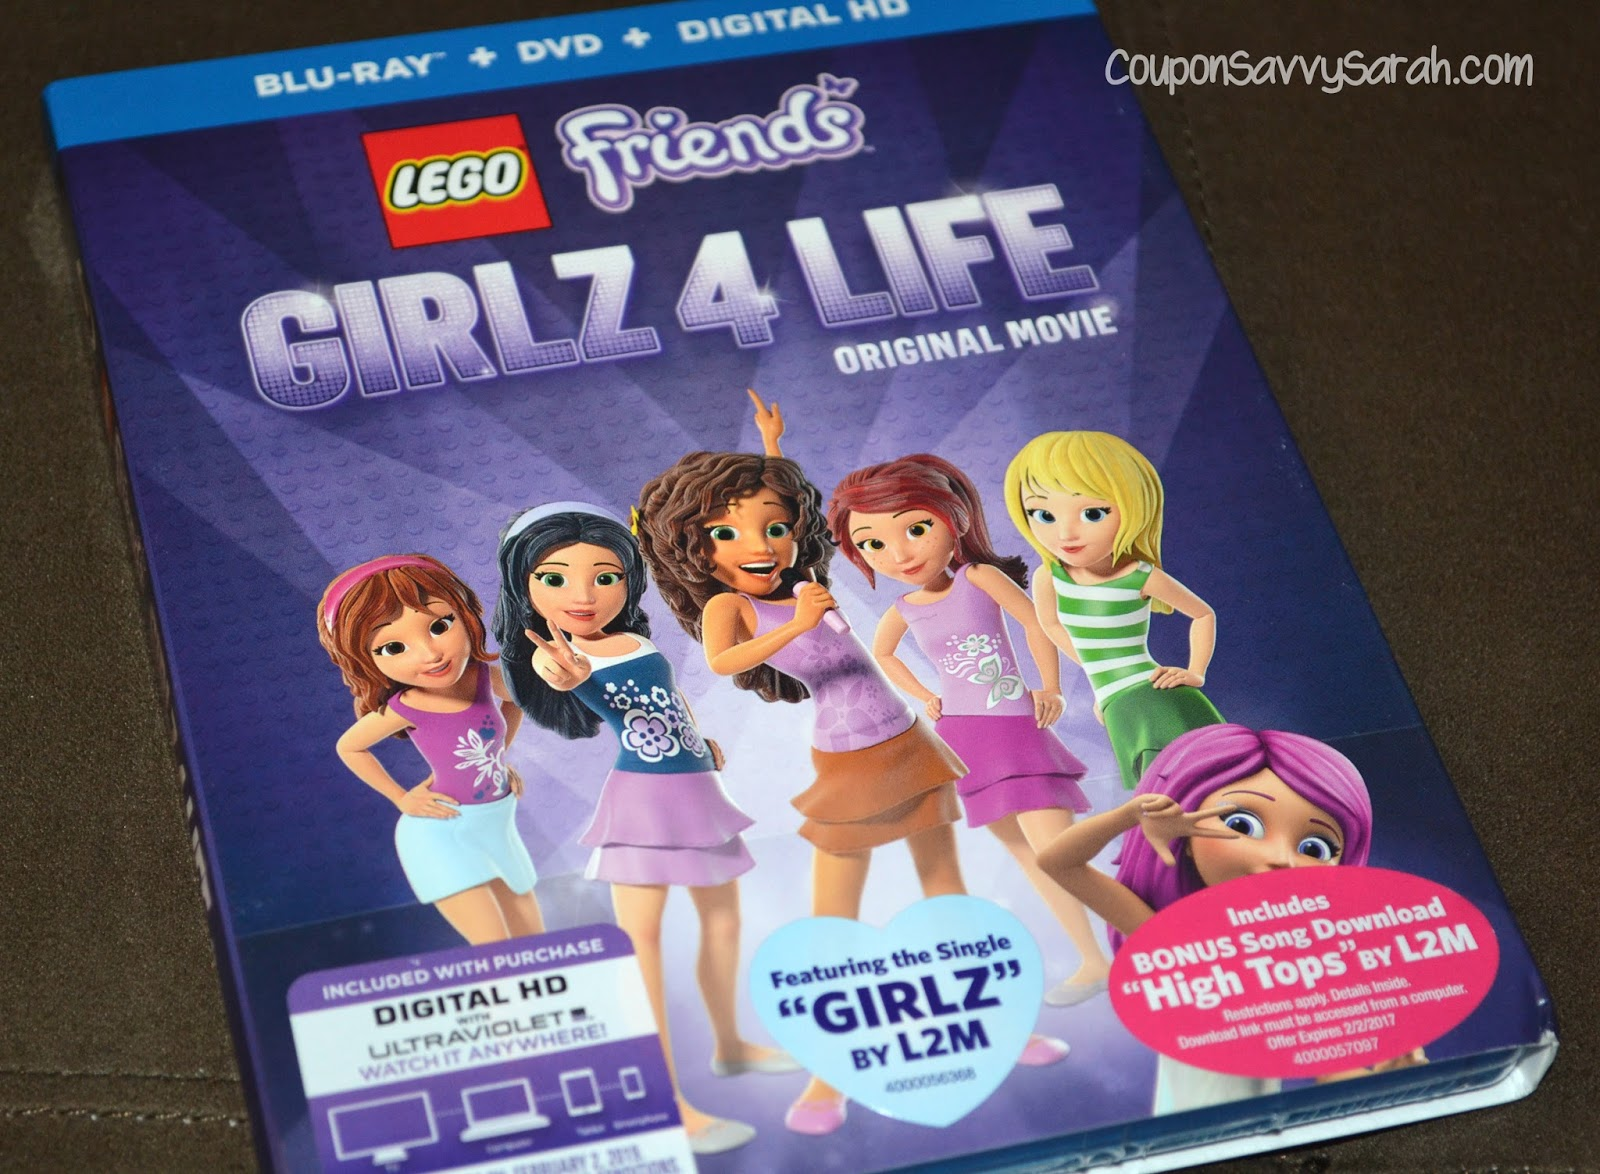 Coupon Savvy Sarah Lego Friends Girlz 4 Life Movie Now